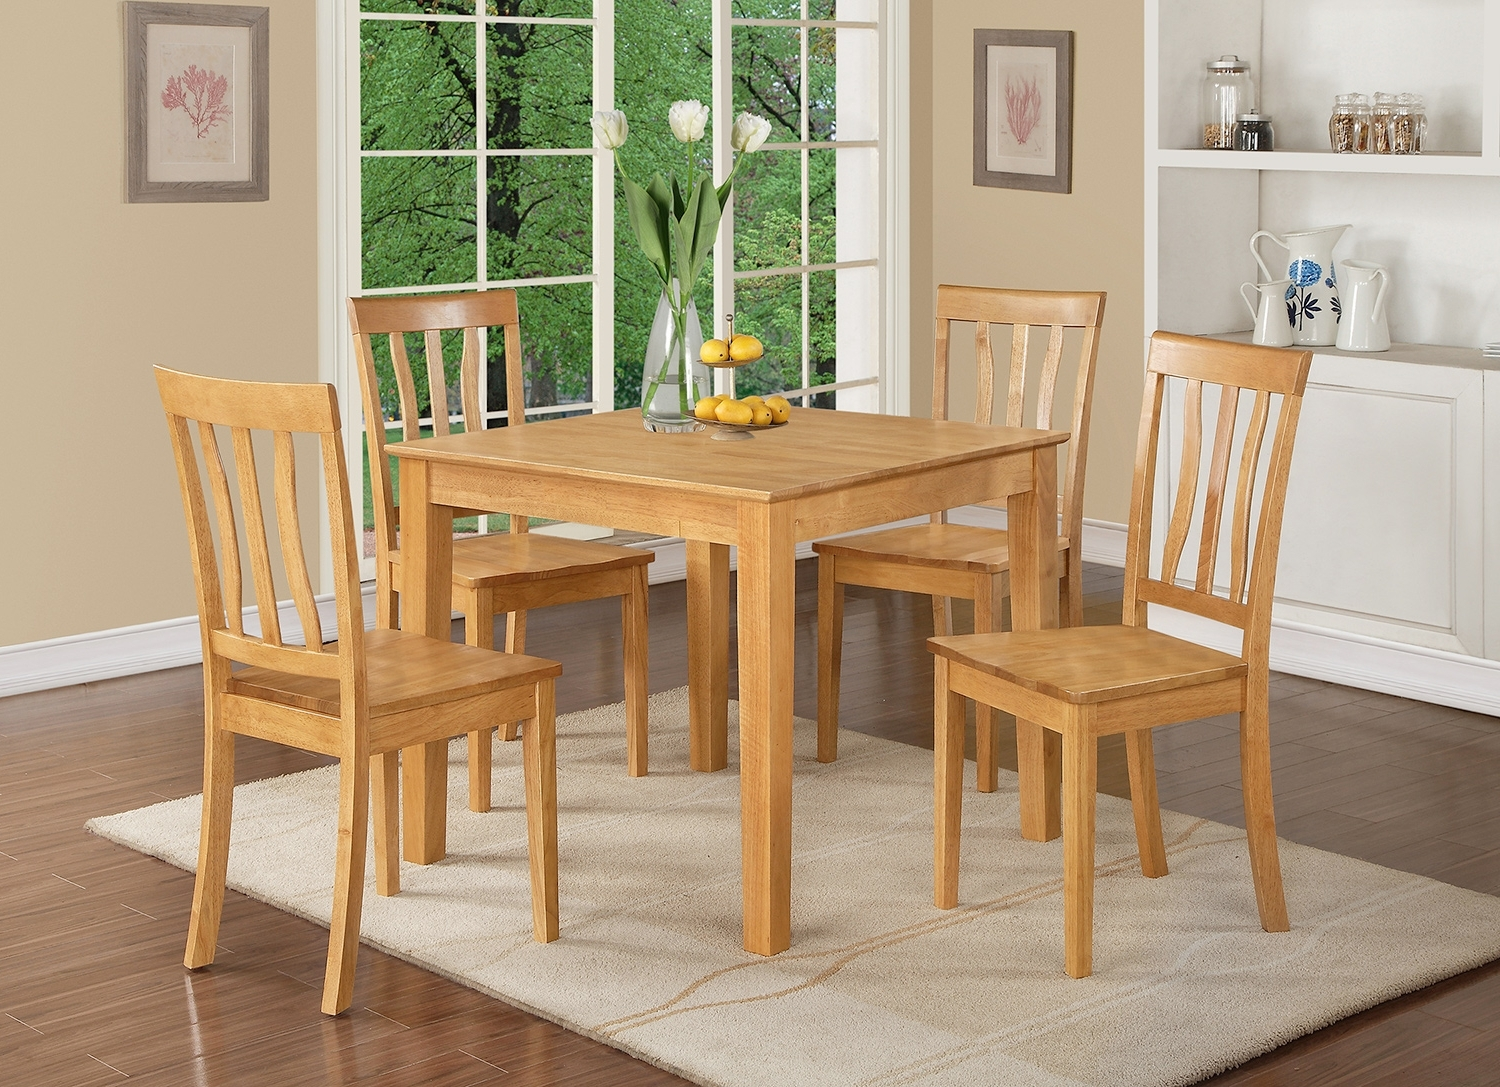 3 Piece Small Kitchen Table And Chairs Set -Square Kitchen Table And pertaining to Most Popular Kitchen Dining Sets